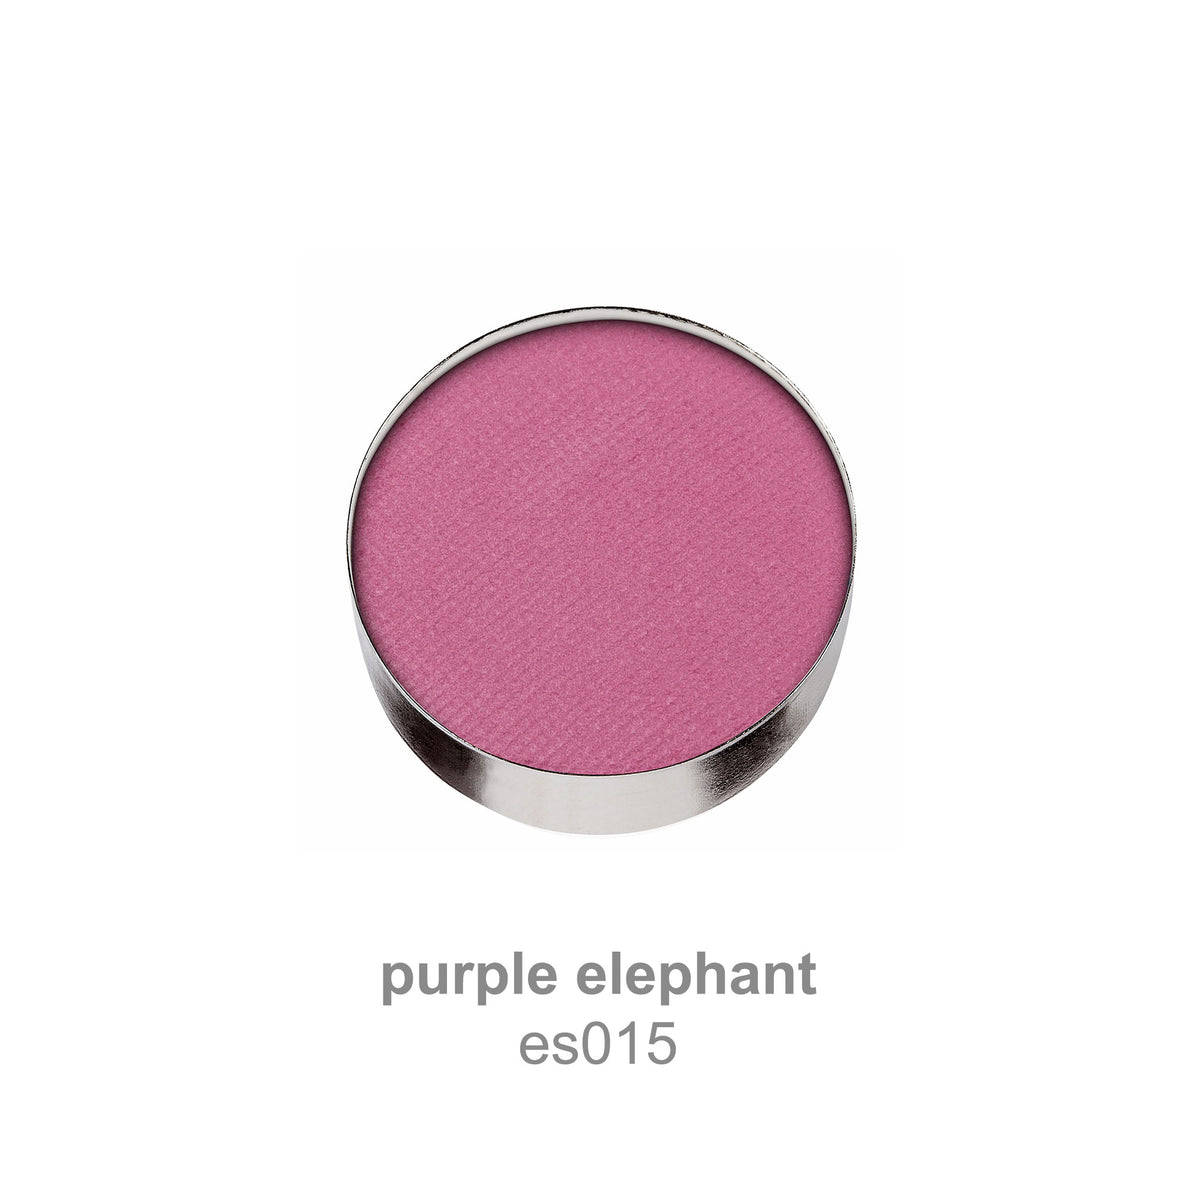 purple elephant (es015)